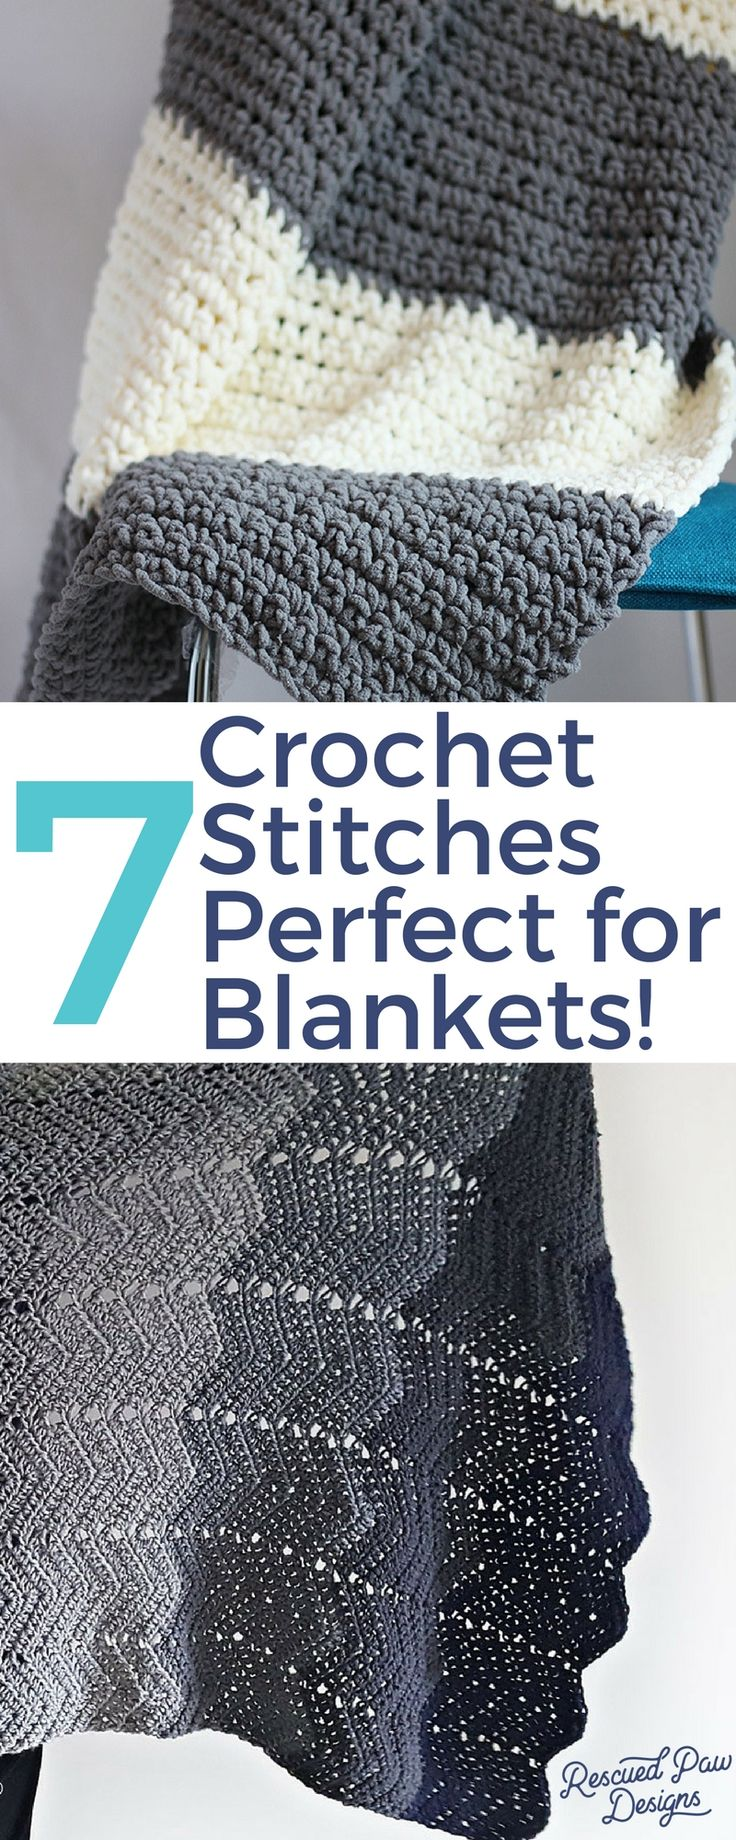 Crochet Stitches for Blankets - Use of these 7 stitches today to create the perfect crochet baby blanket! With this list of easy crochet blanket stitches you will be sure to find the one to create the best crochet baby blanket! Each one would be good crochet stitches for blankets! Use all 7 crochet stitches for just one! More free patterns just like this can be found at www.rescuedpawdesigns.com! Free and Simple Crochet!